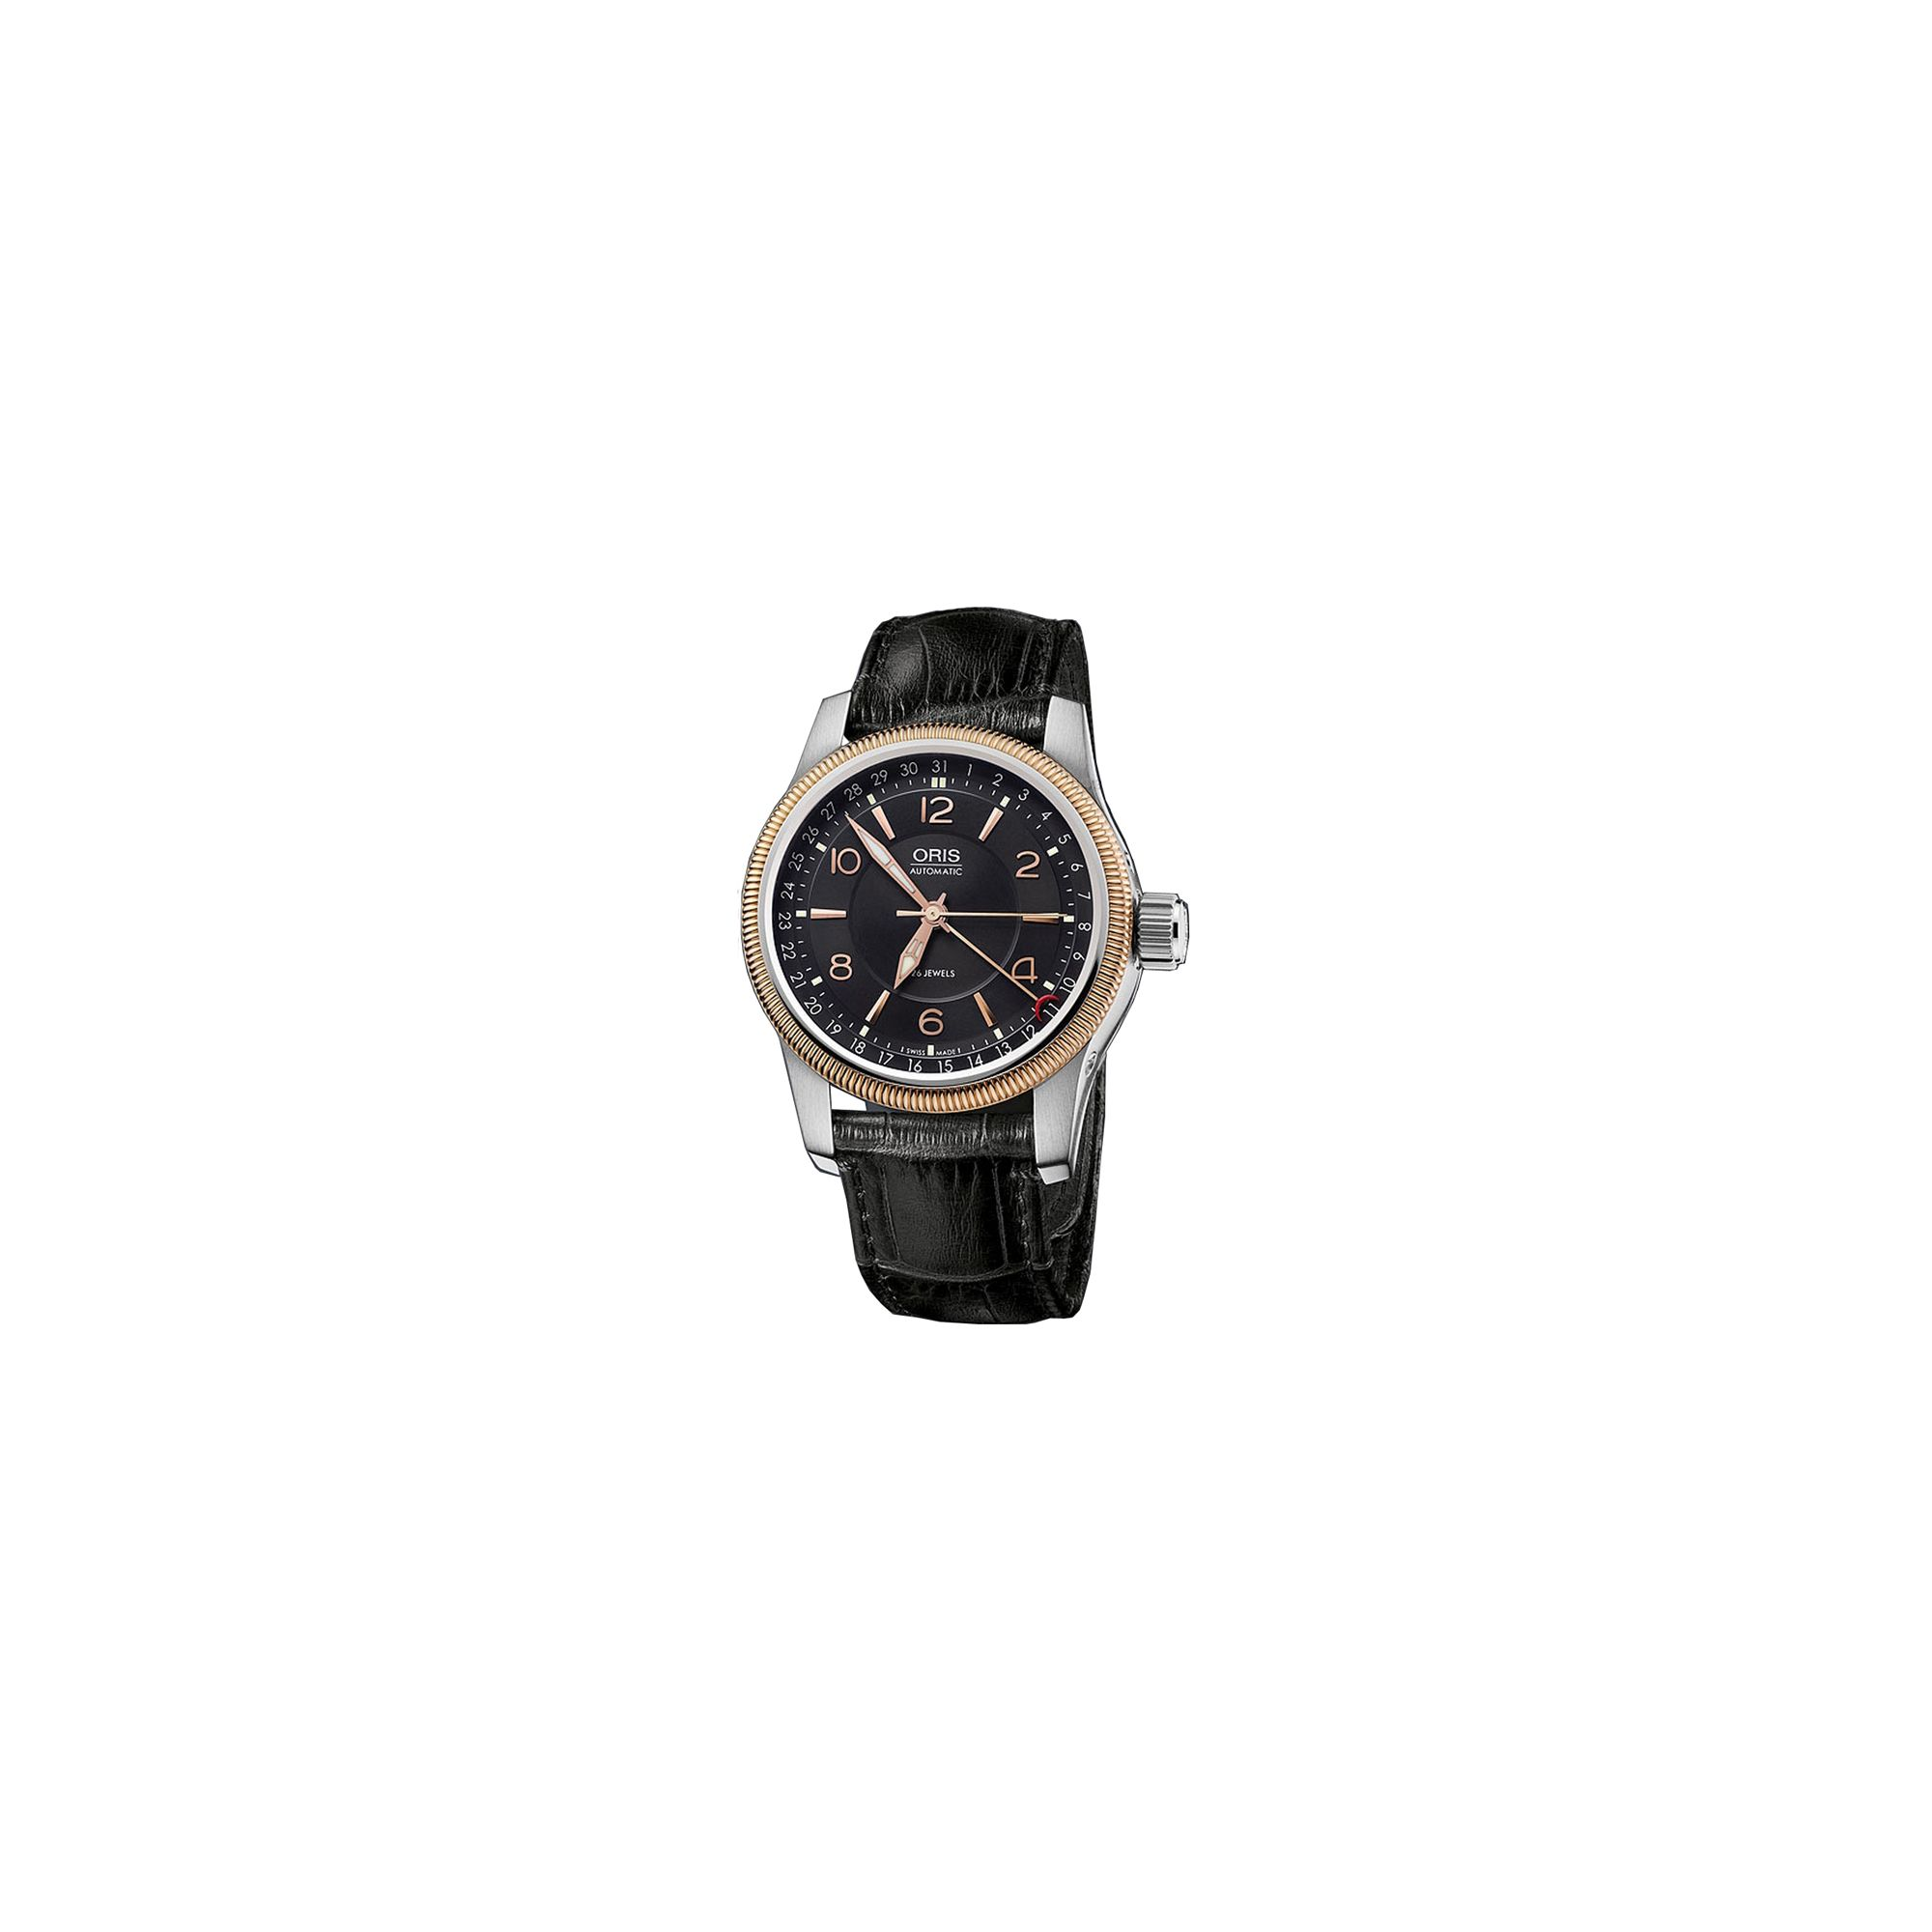 Oris Gents Big Crown Black Leather Strap Watch 75476284364LS at Tesco Direct